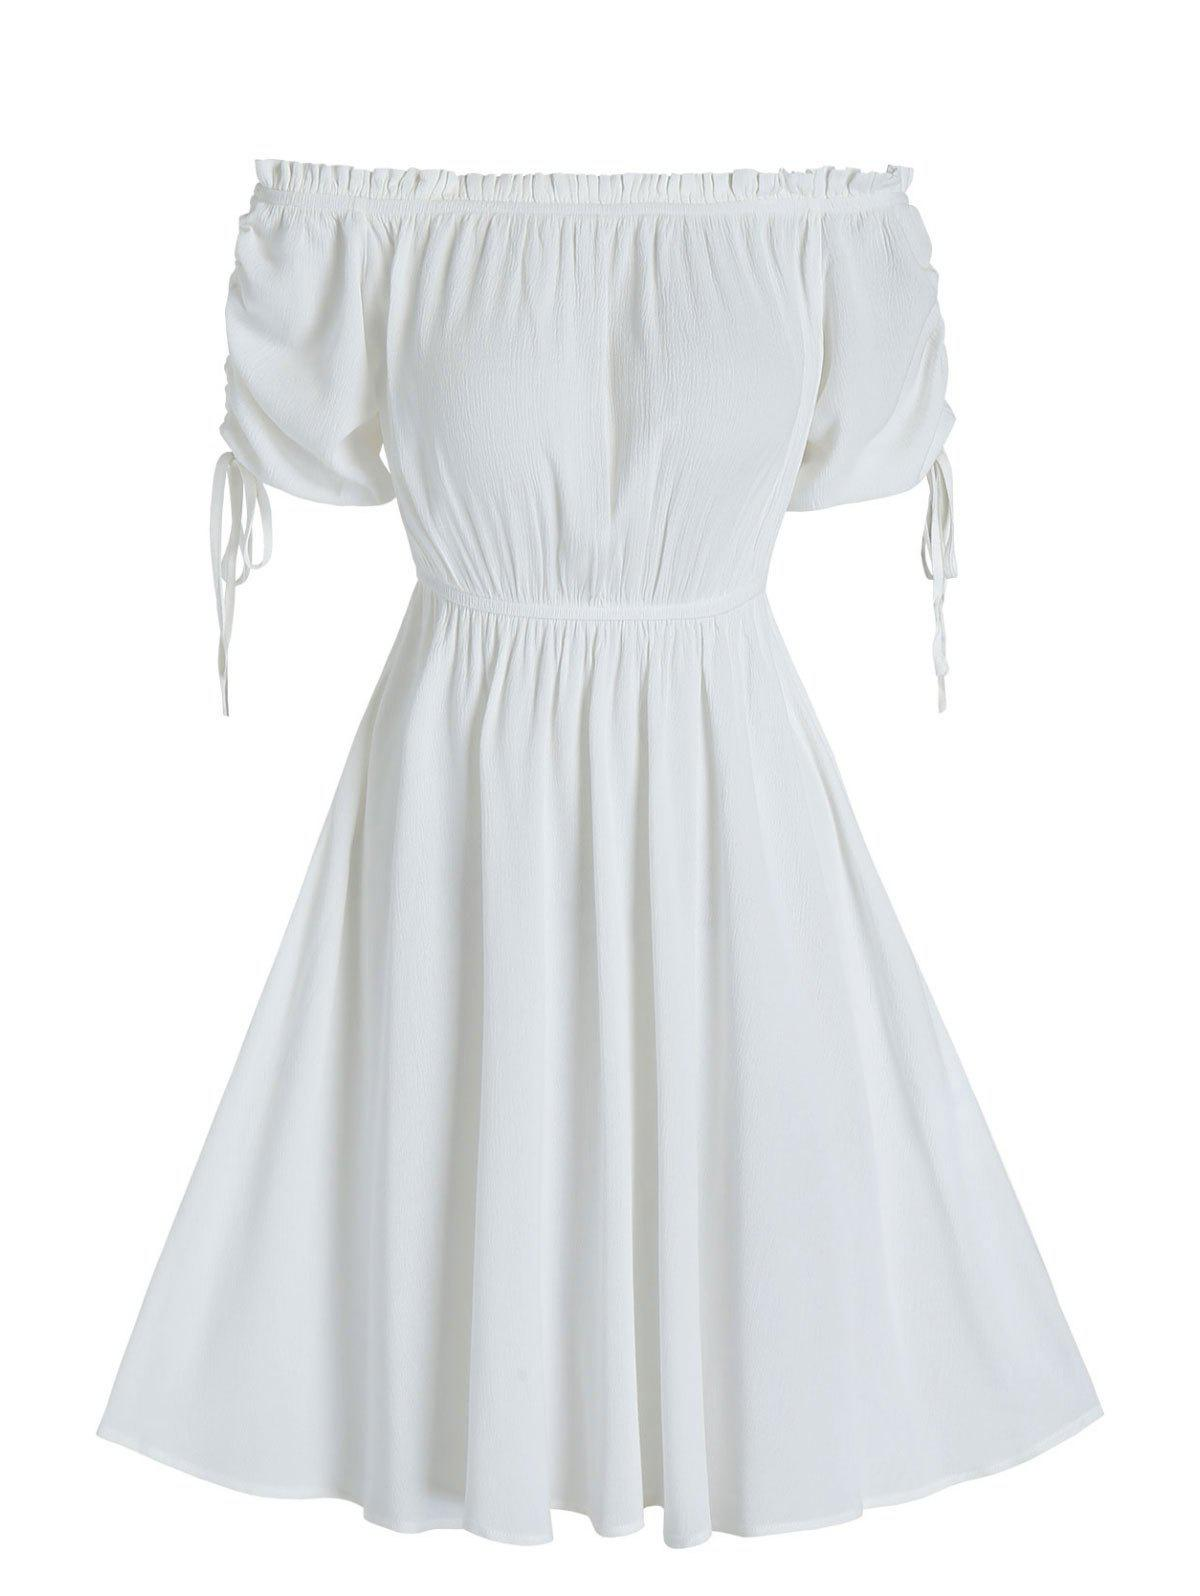 Ruched Off The Shoulder Ruffle A Line Dress - WHITE M